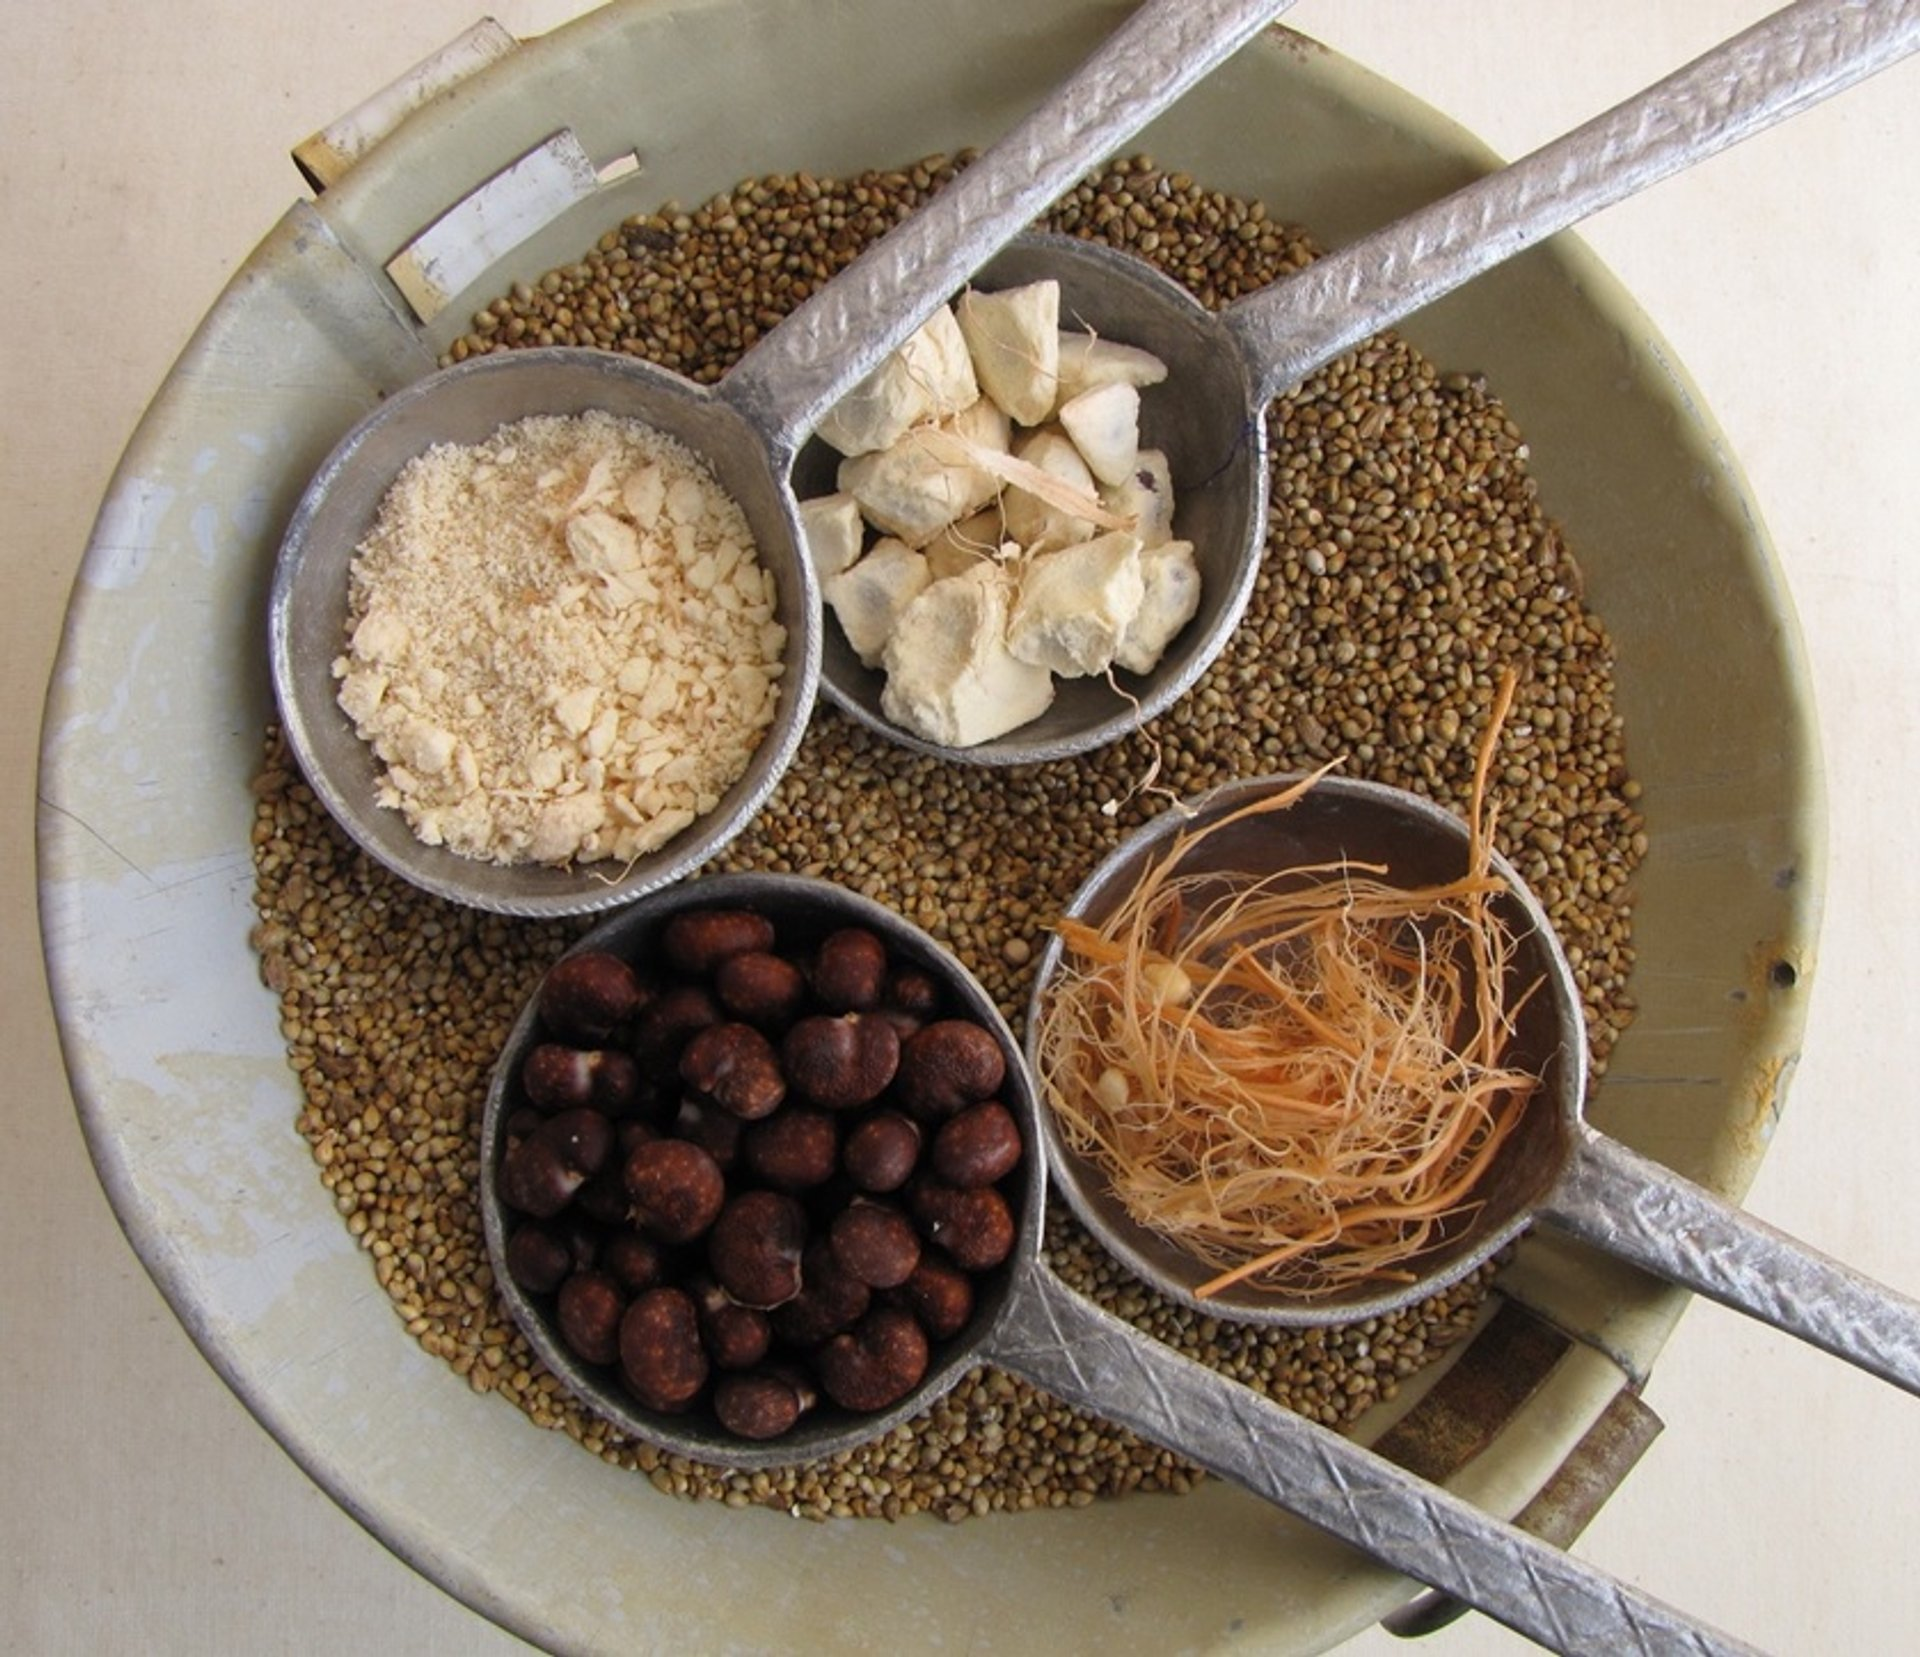 The dry, mature baobab fruit pulp chunks are shown compared to the three elements that comprise it: a white, opaque powdery edible pulp separated from pinkish fibers and brown baobab seeds 2020